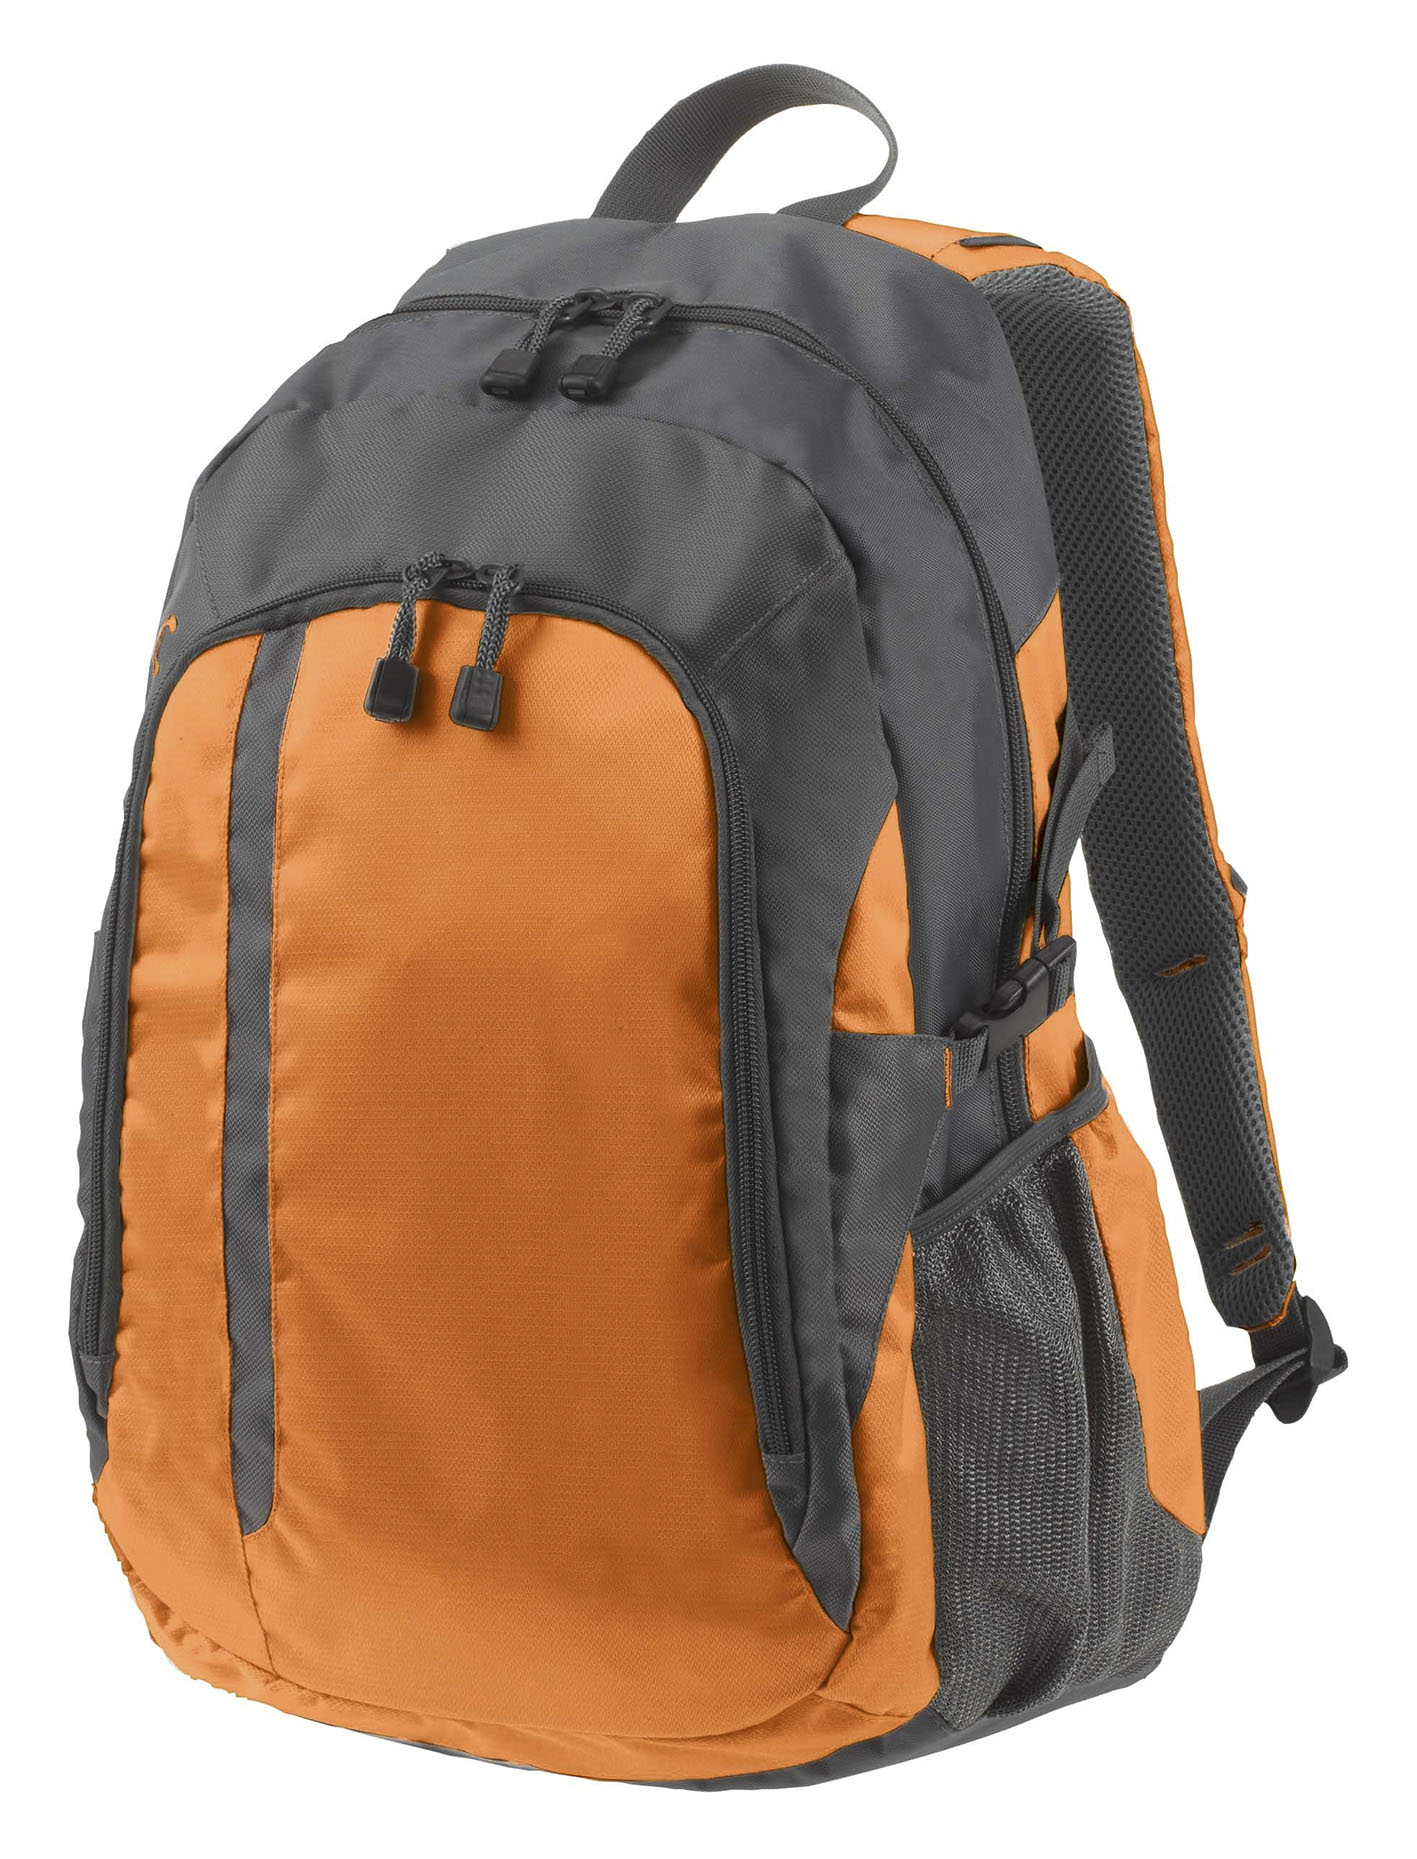 Galaxy Backpack in Orange and Grey